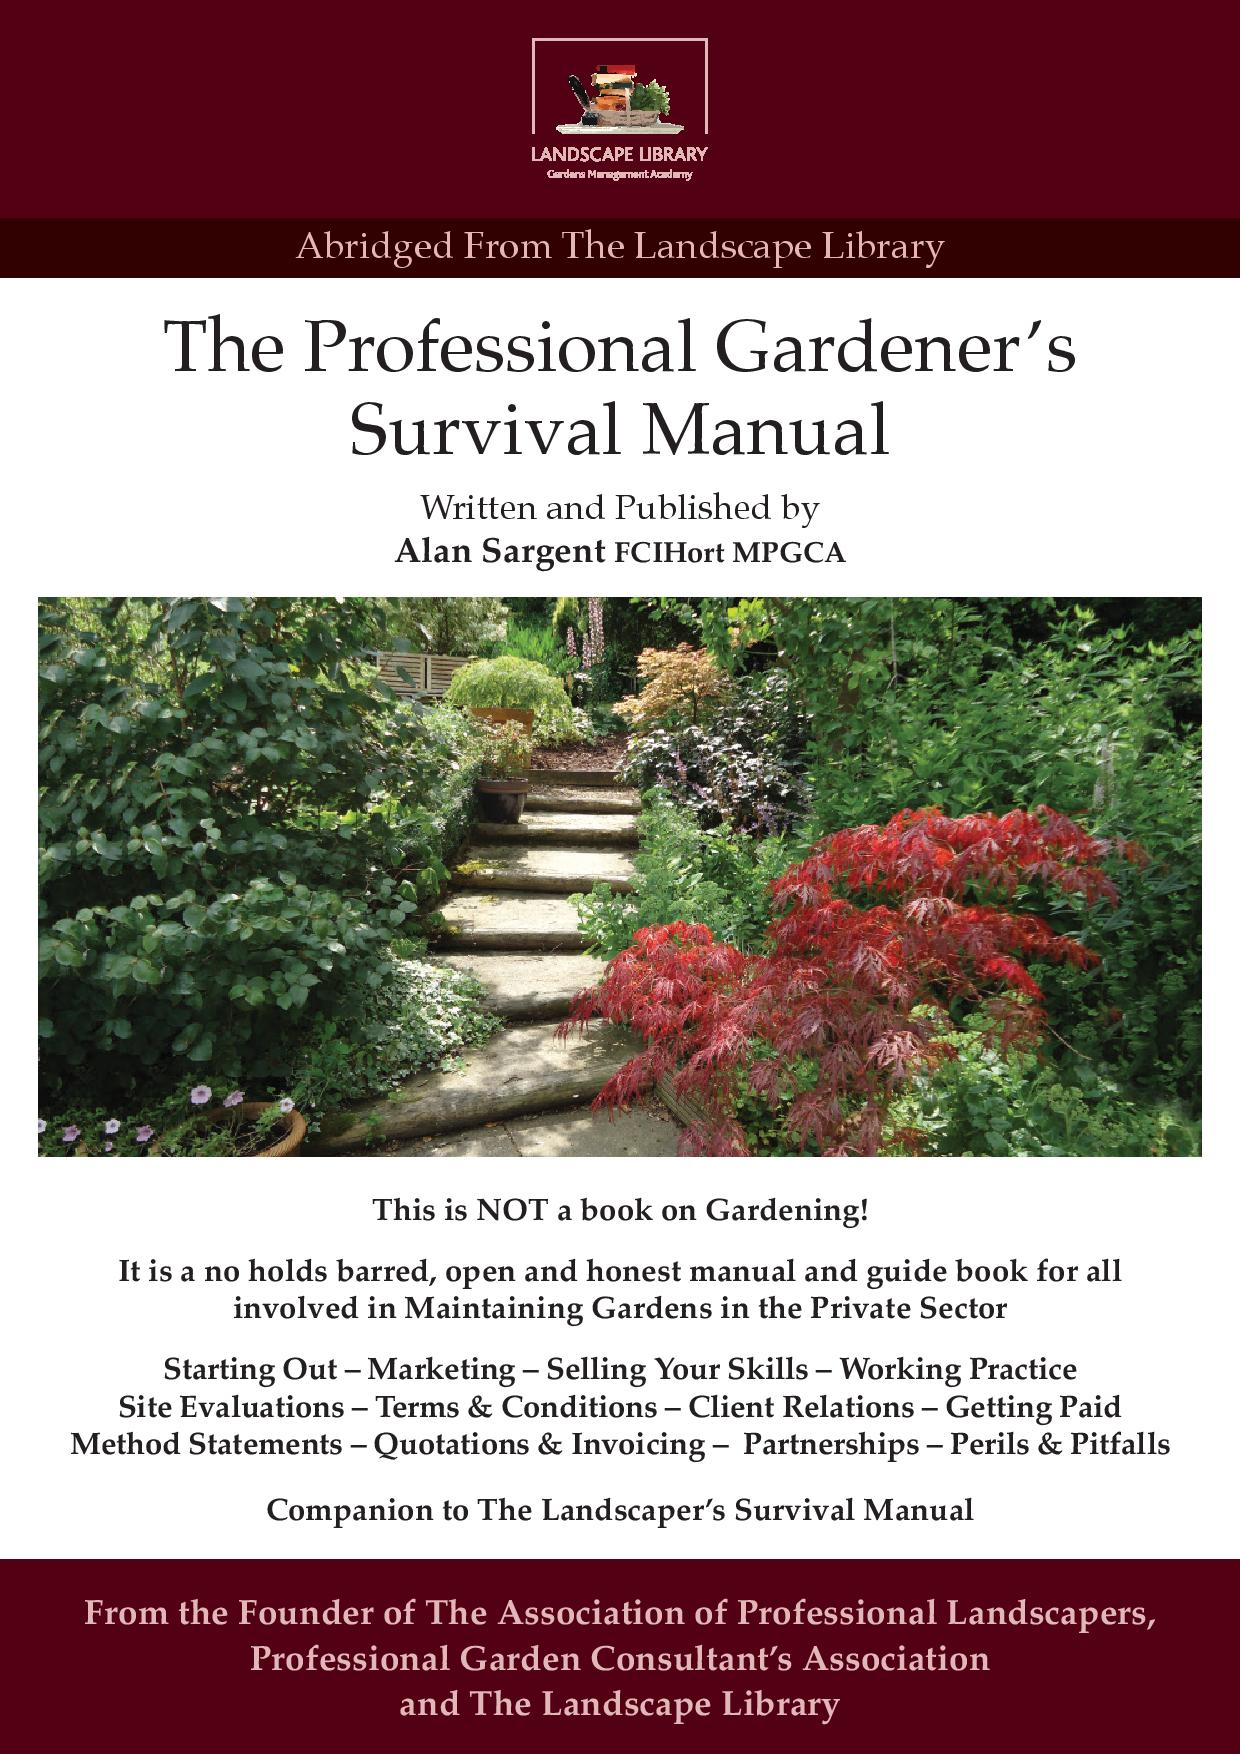 The Professional Gardeners Survival Manual